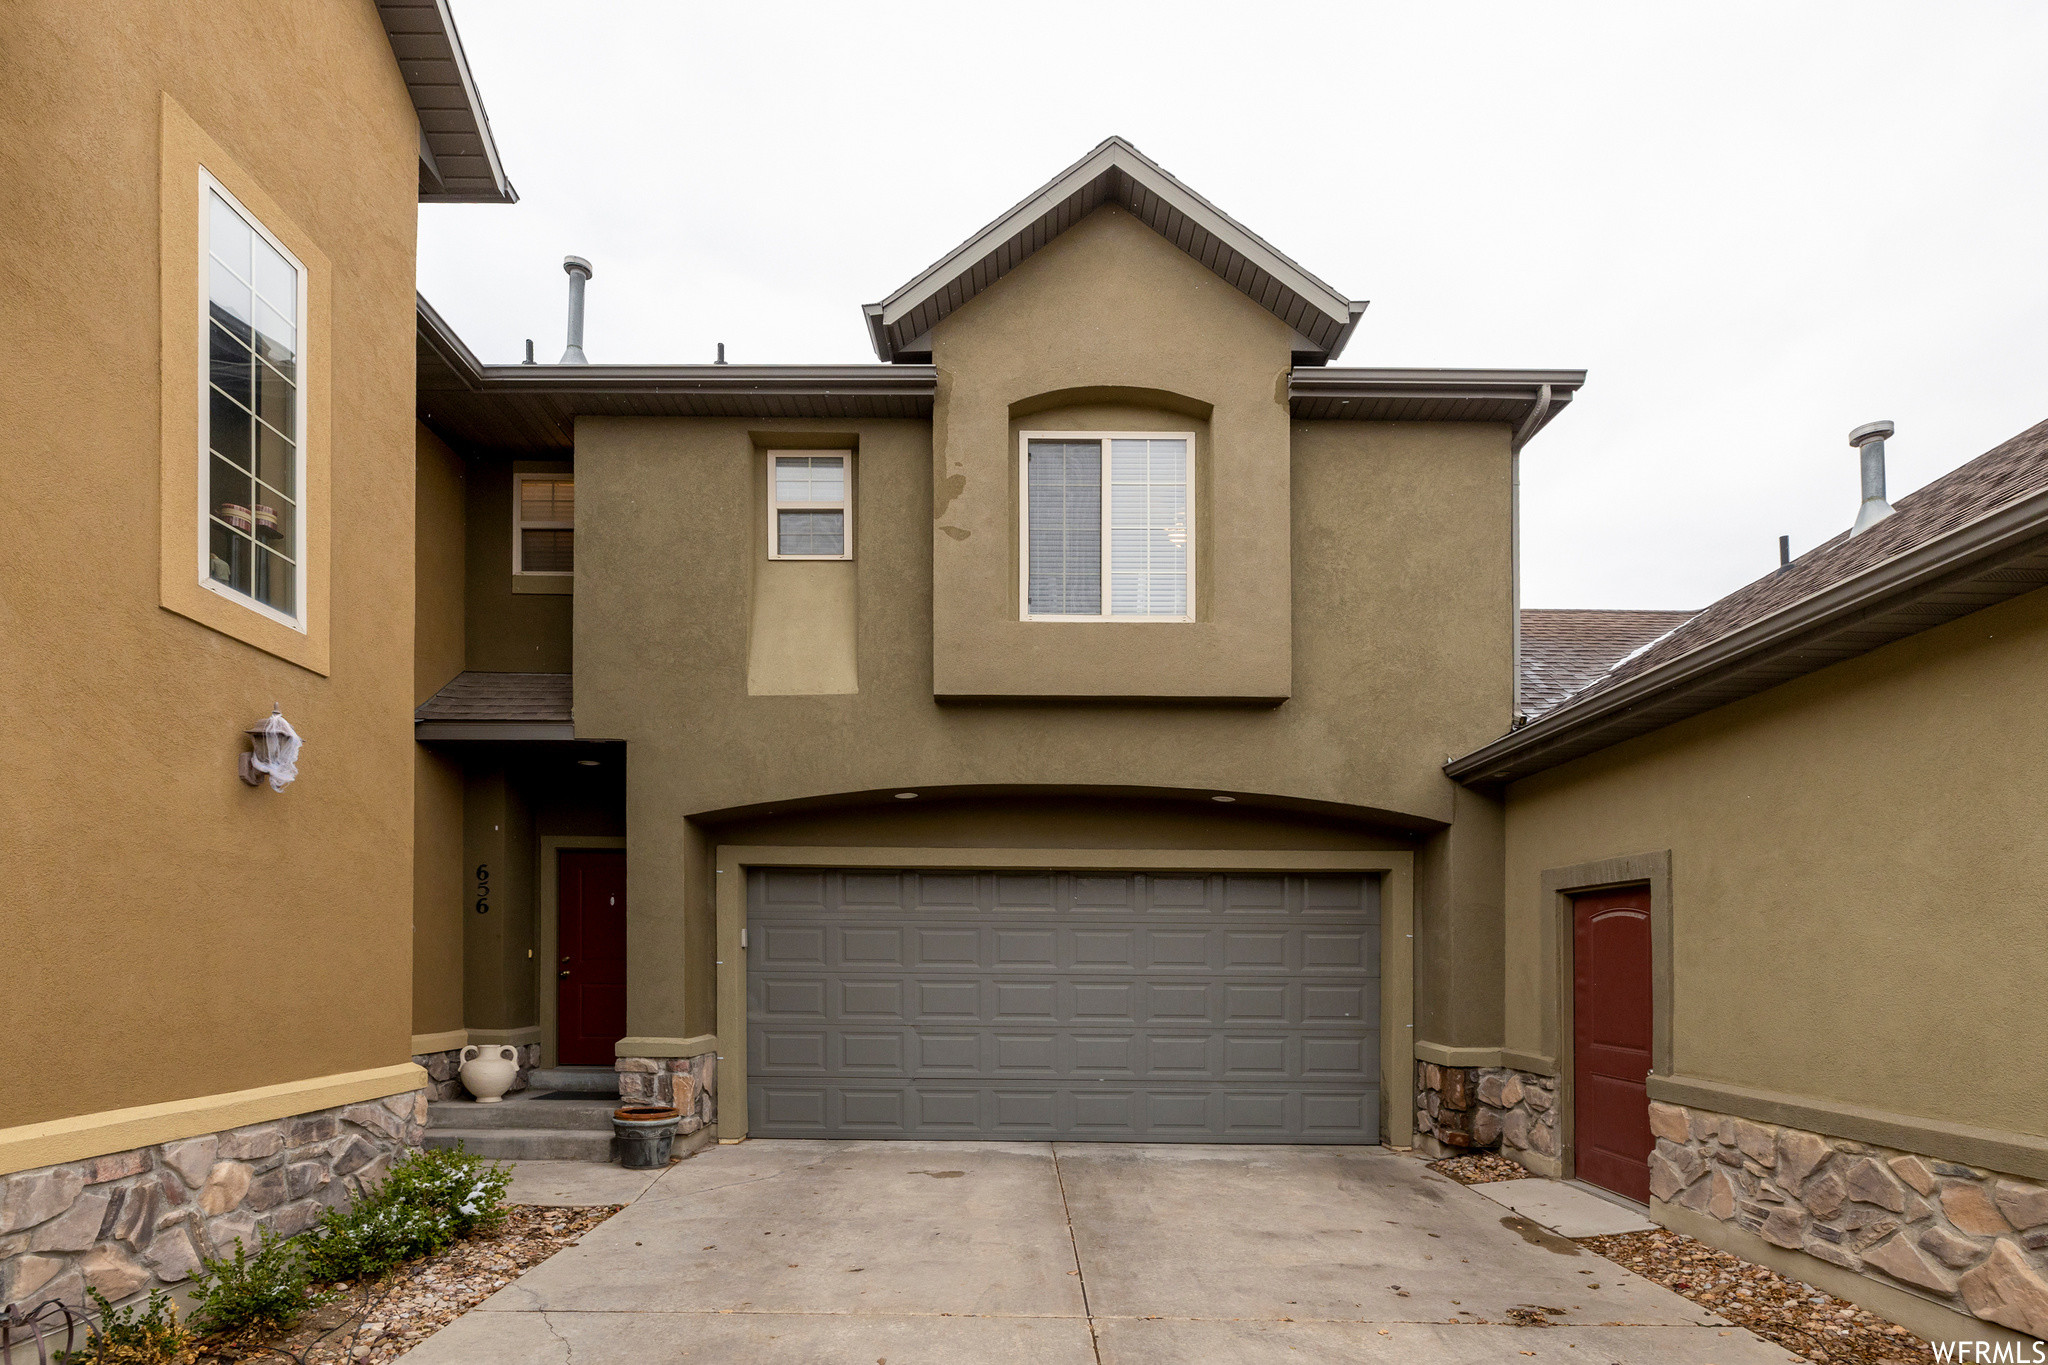 3-Story Townhouse In Eastridge